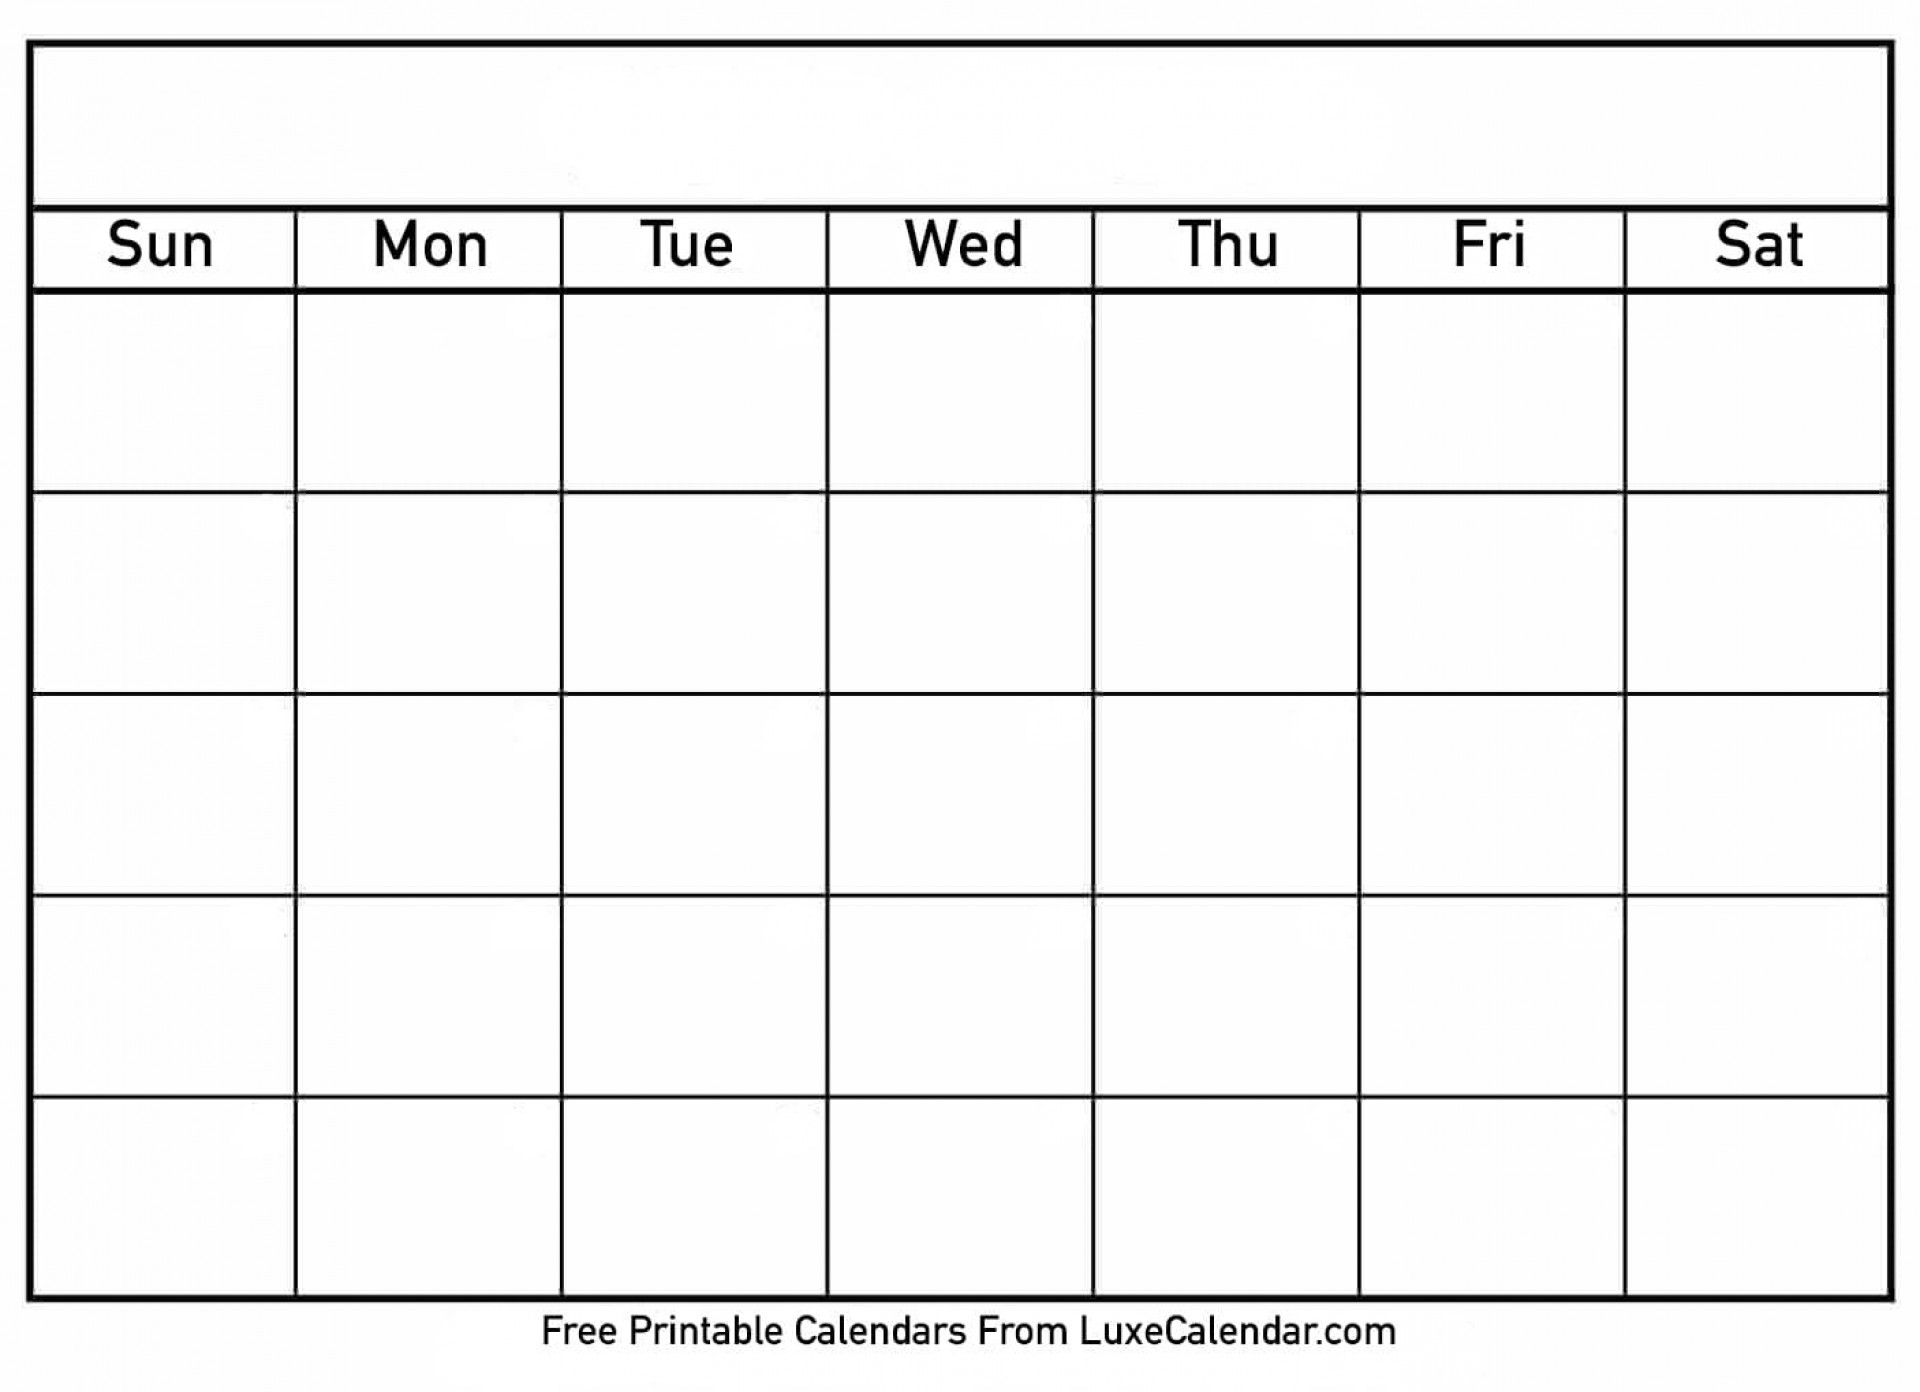 002 Free Blank Calendar Template Singular Ideas Monthly